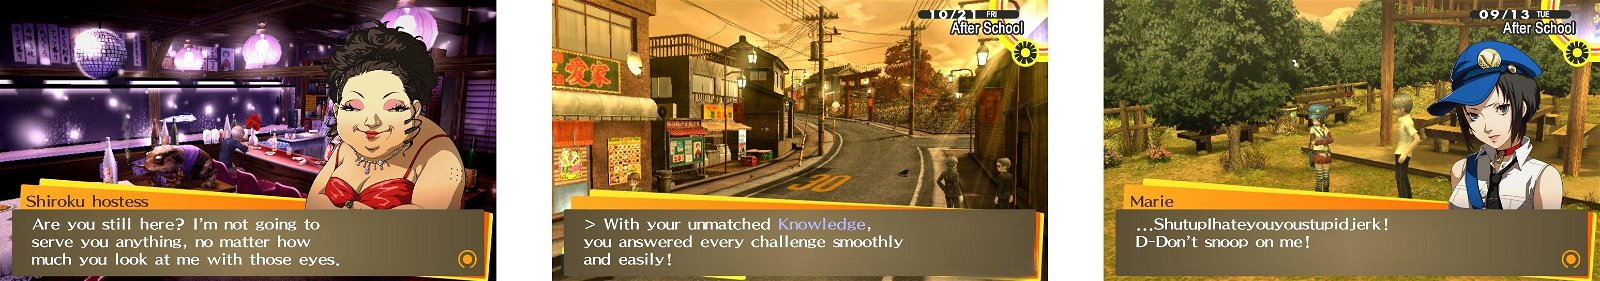 Persona-4-Golden_screens_1_0009.jpg